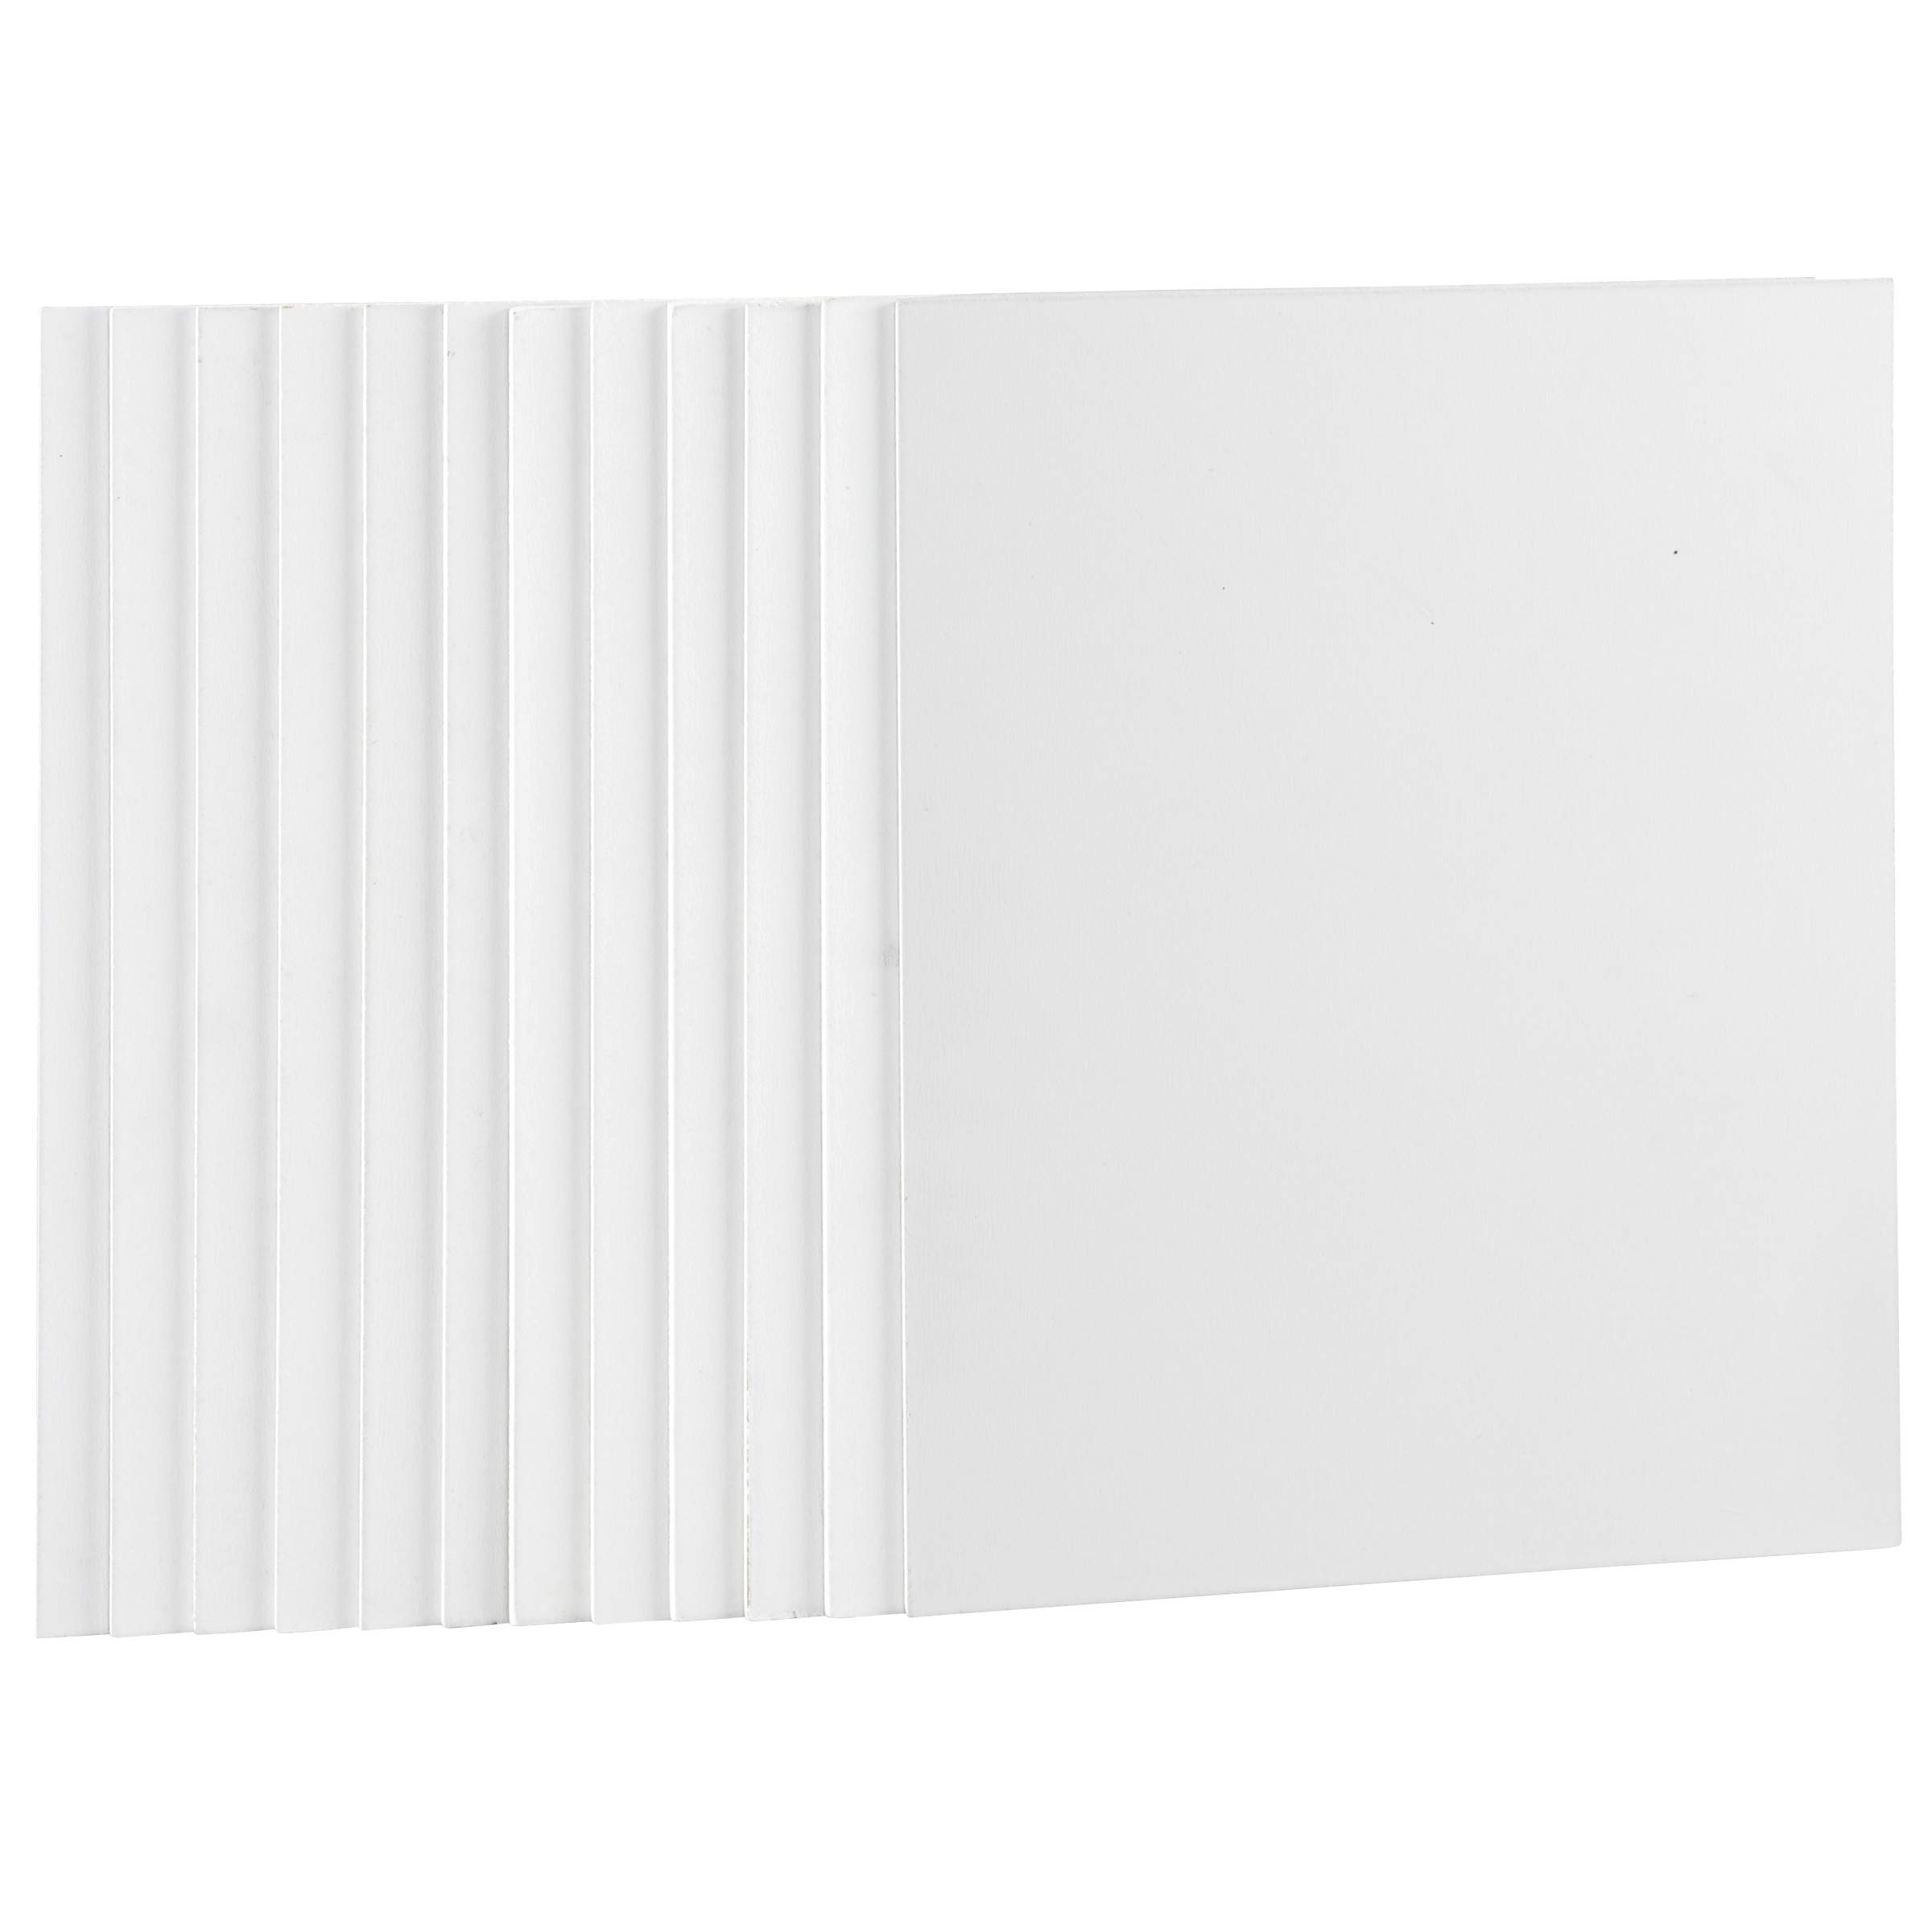 Artlicious Gesso Boards 12 Pack - 8X10 Art Boards for Painting